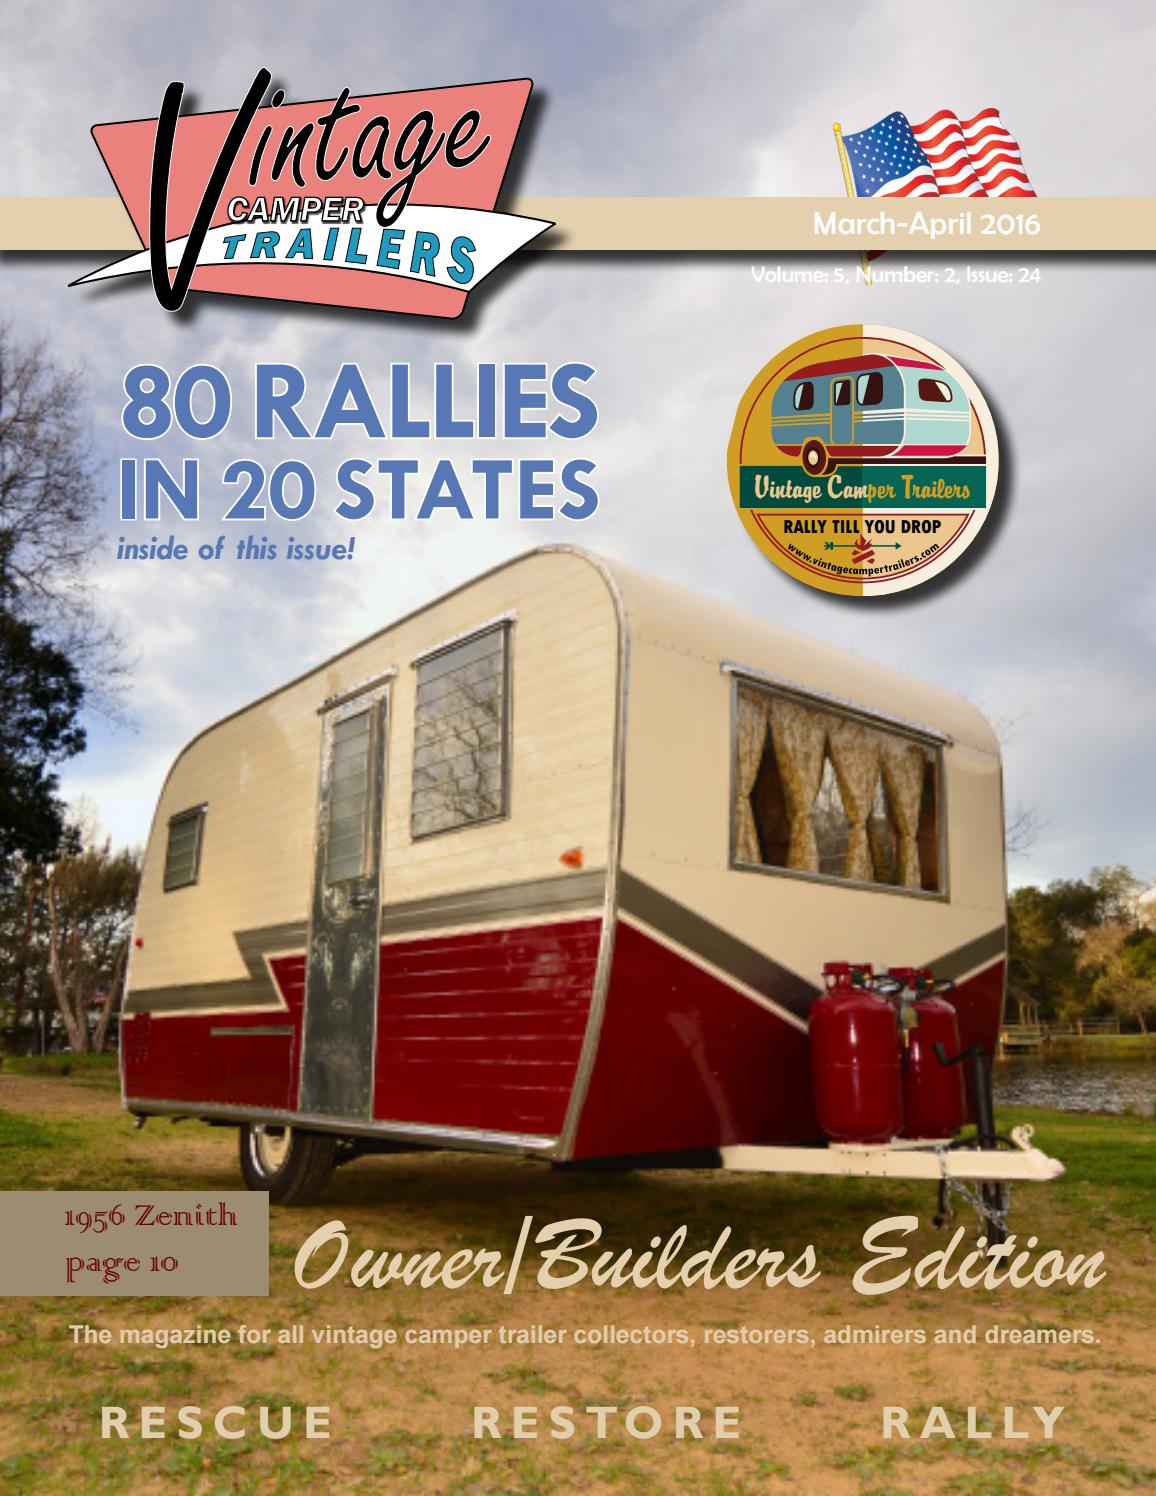 The Vintage Camper Trailers Magazine #24 by Vintage Camper Trailers - issuu